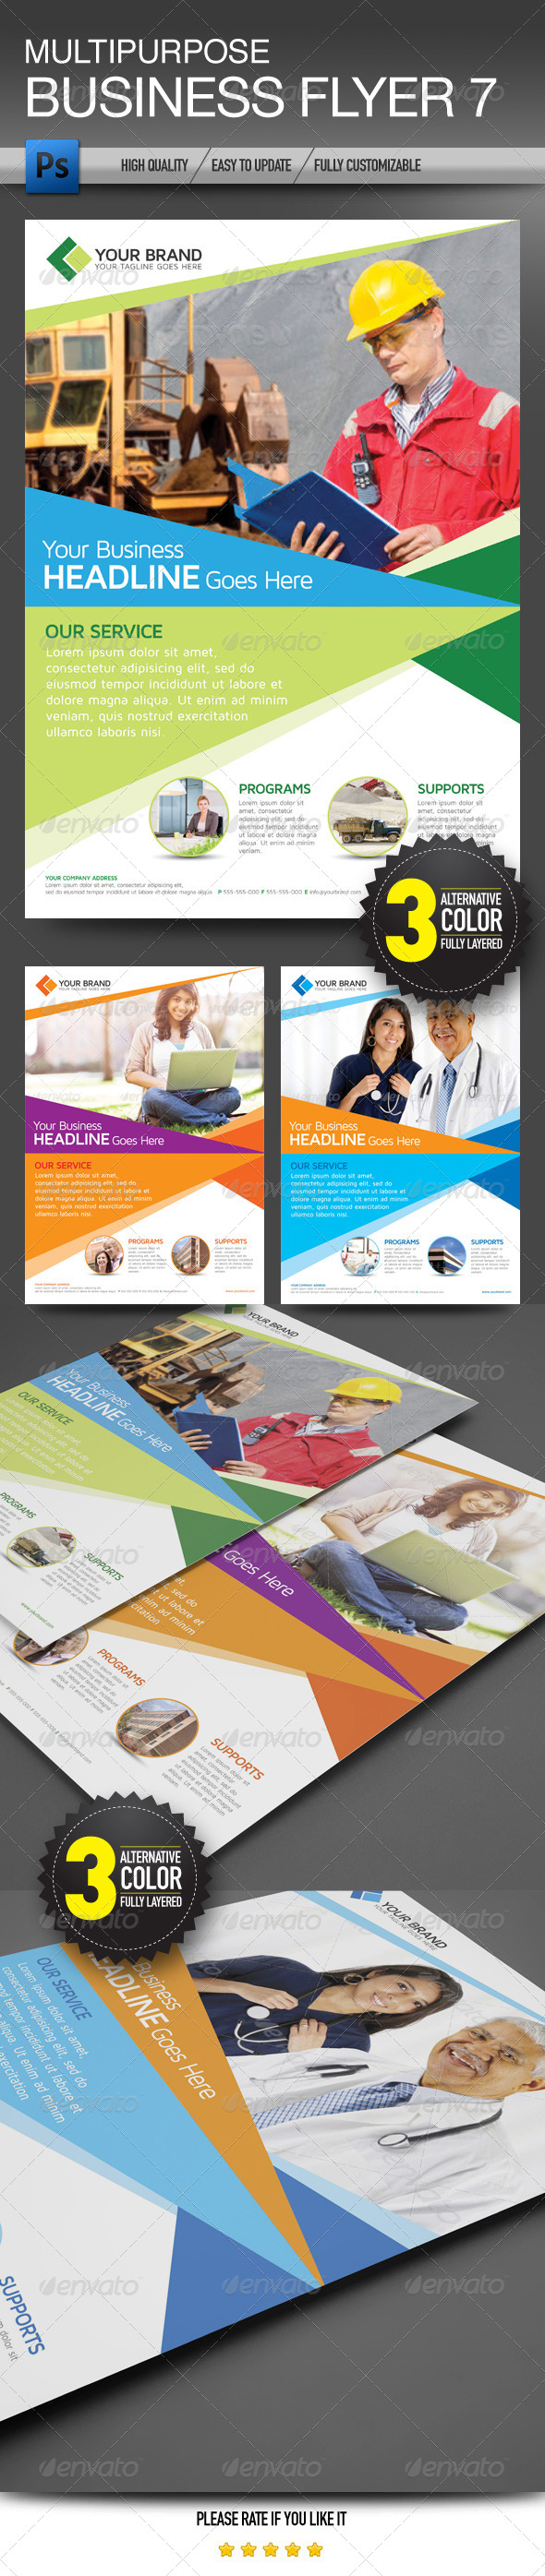 Multipurpose Business Flyer 7 - Corporate Flyers